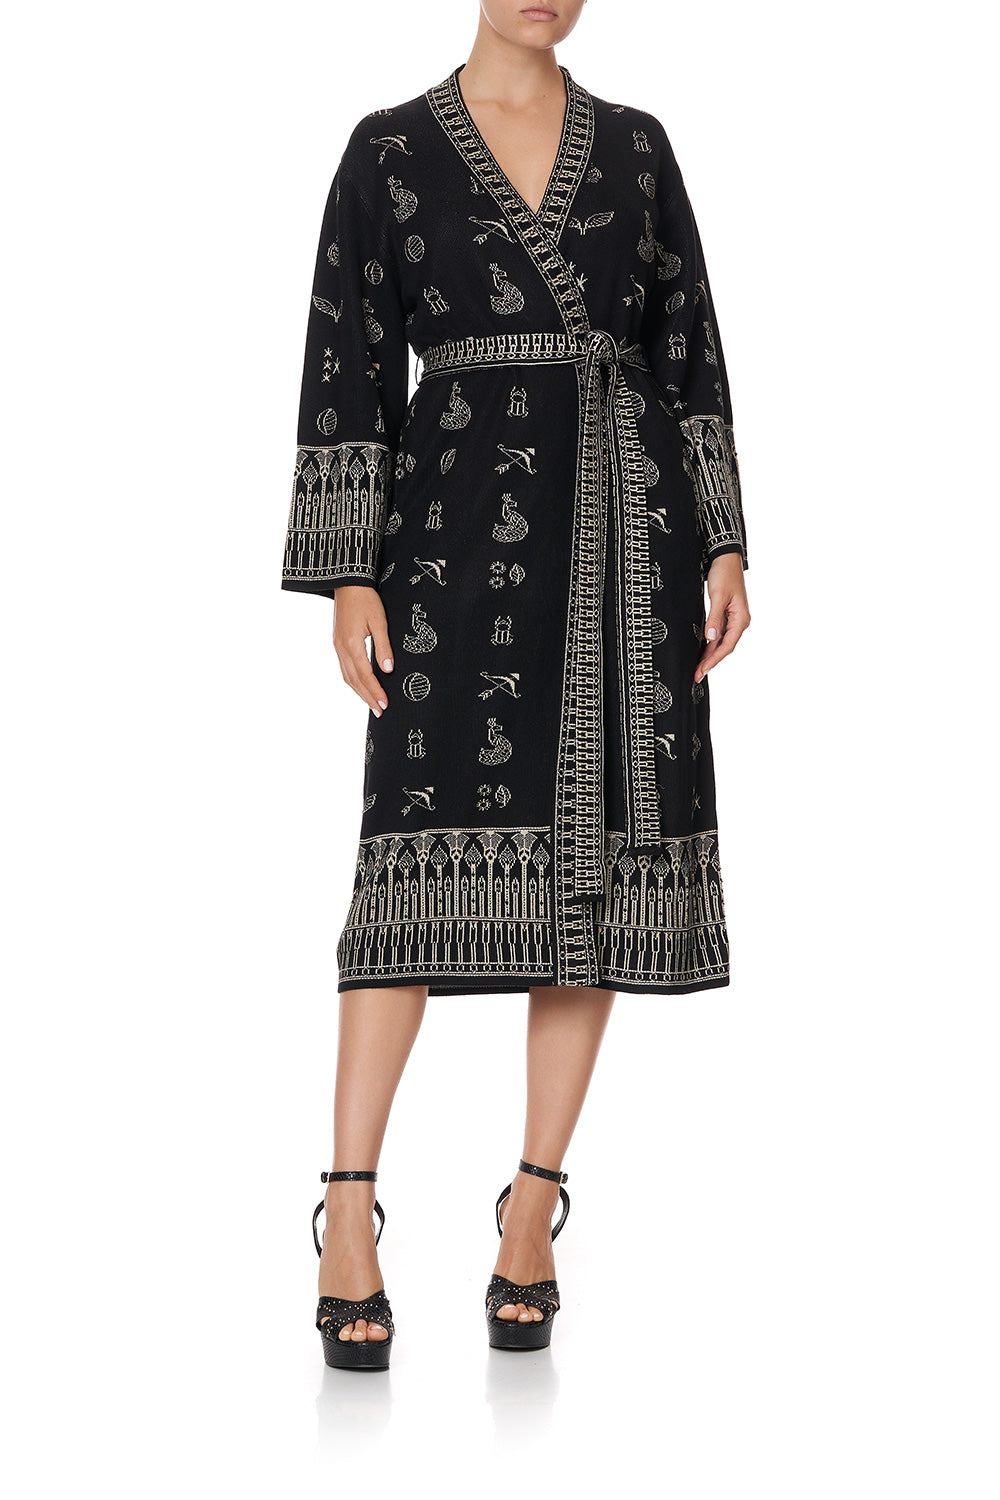 KNIT JACQUARD ROBE WITH WIDE SLEEVE YOU'VE GOT MAIL